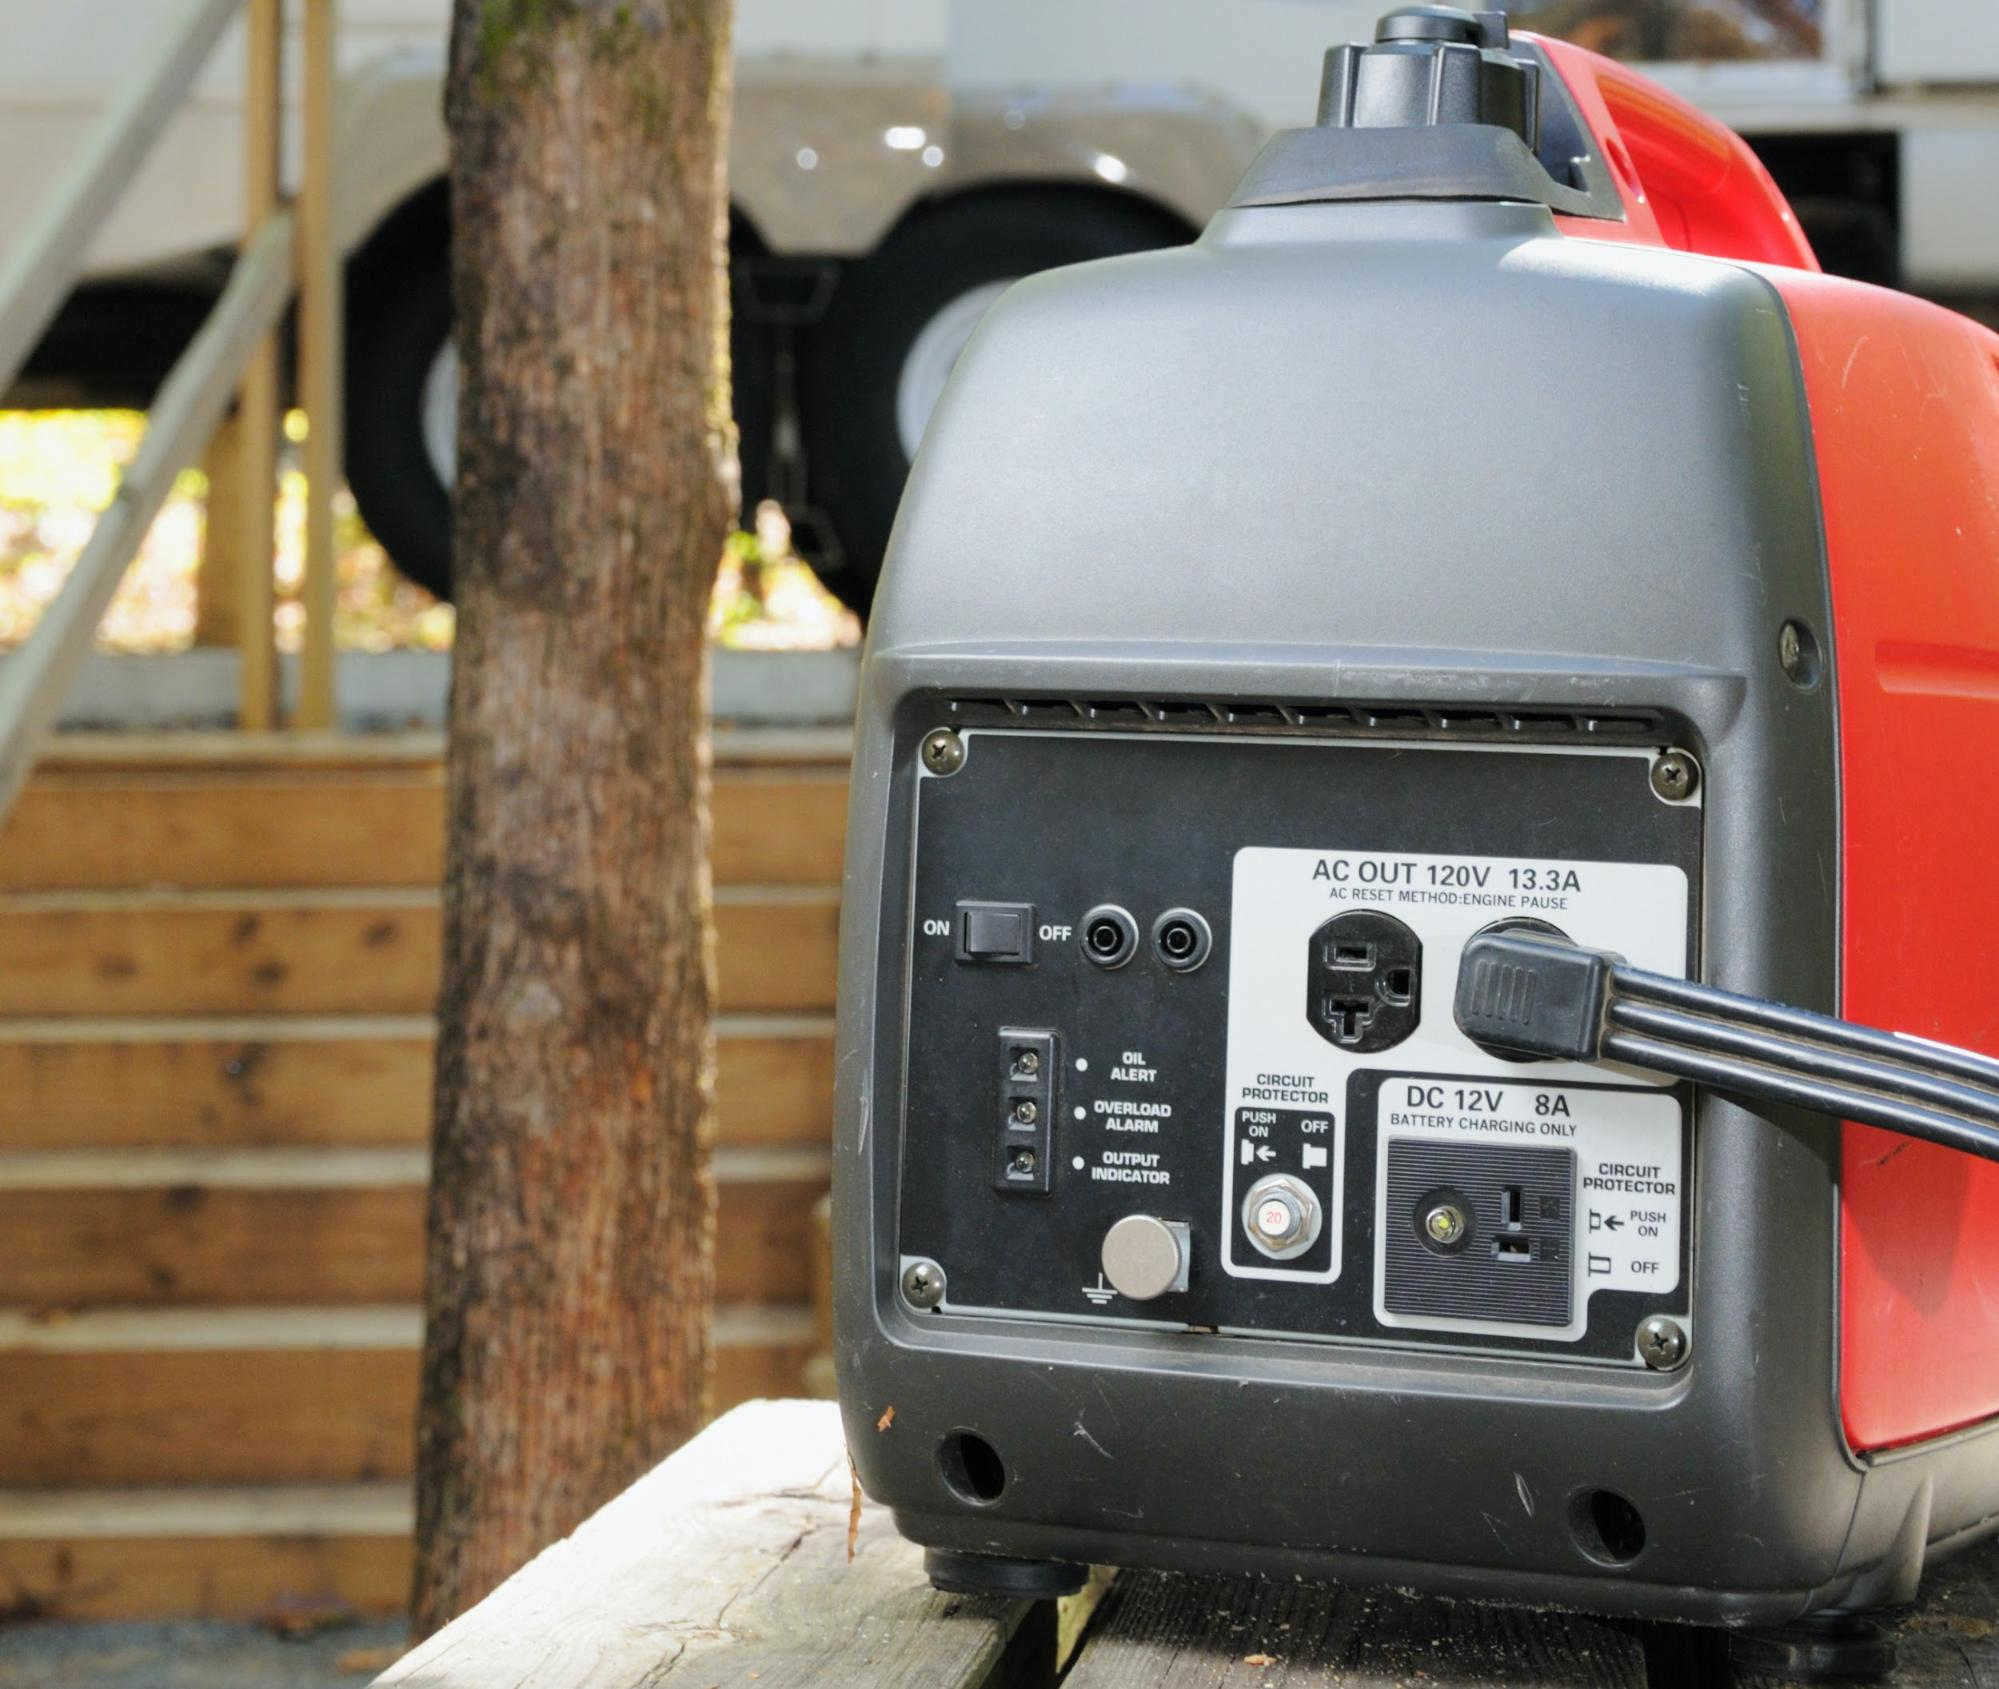 Generator for an RV